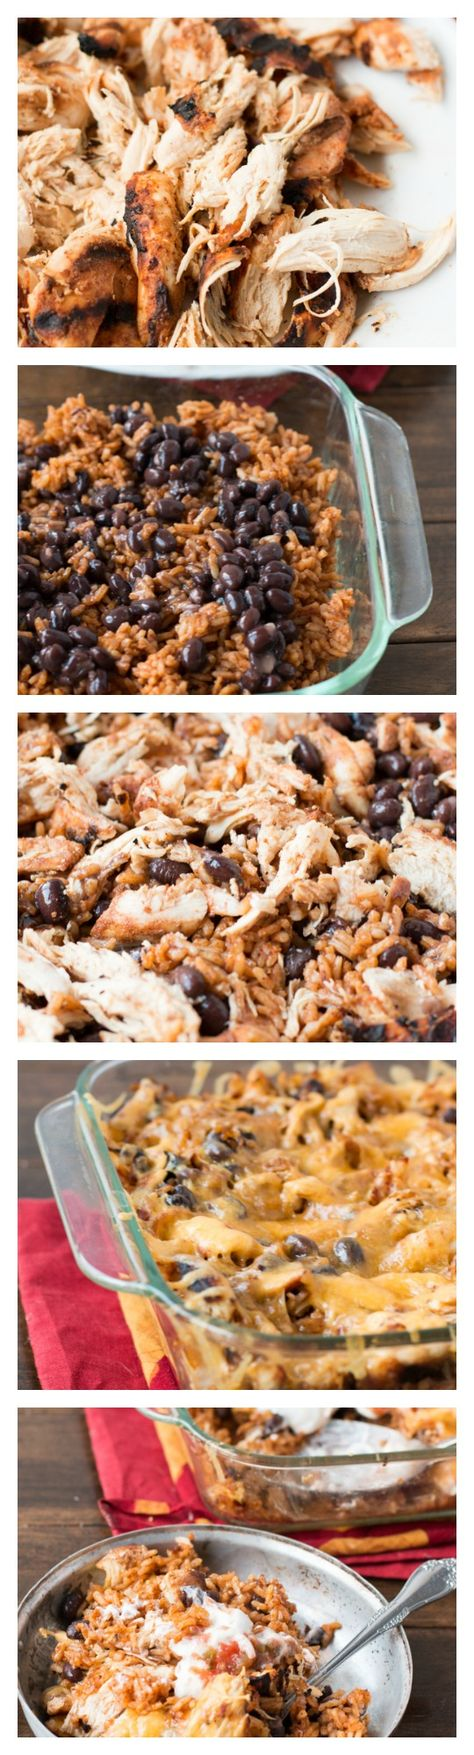 How to make a crazy delicious Mexican chicken and rice casserole ohsweetbasil.com.